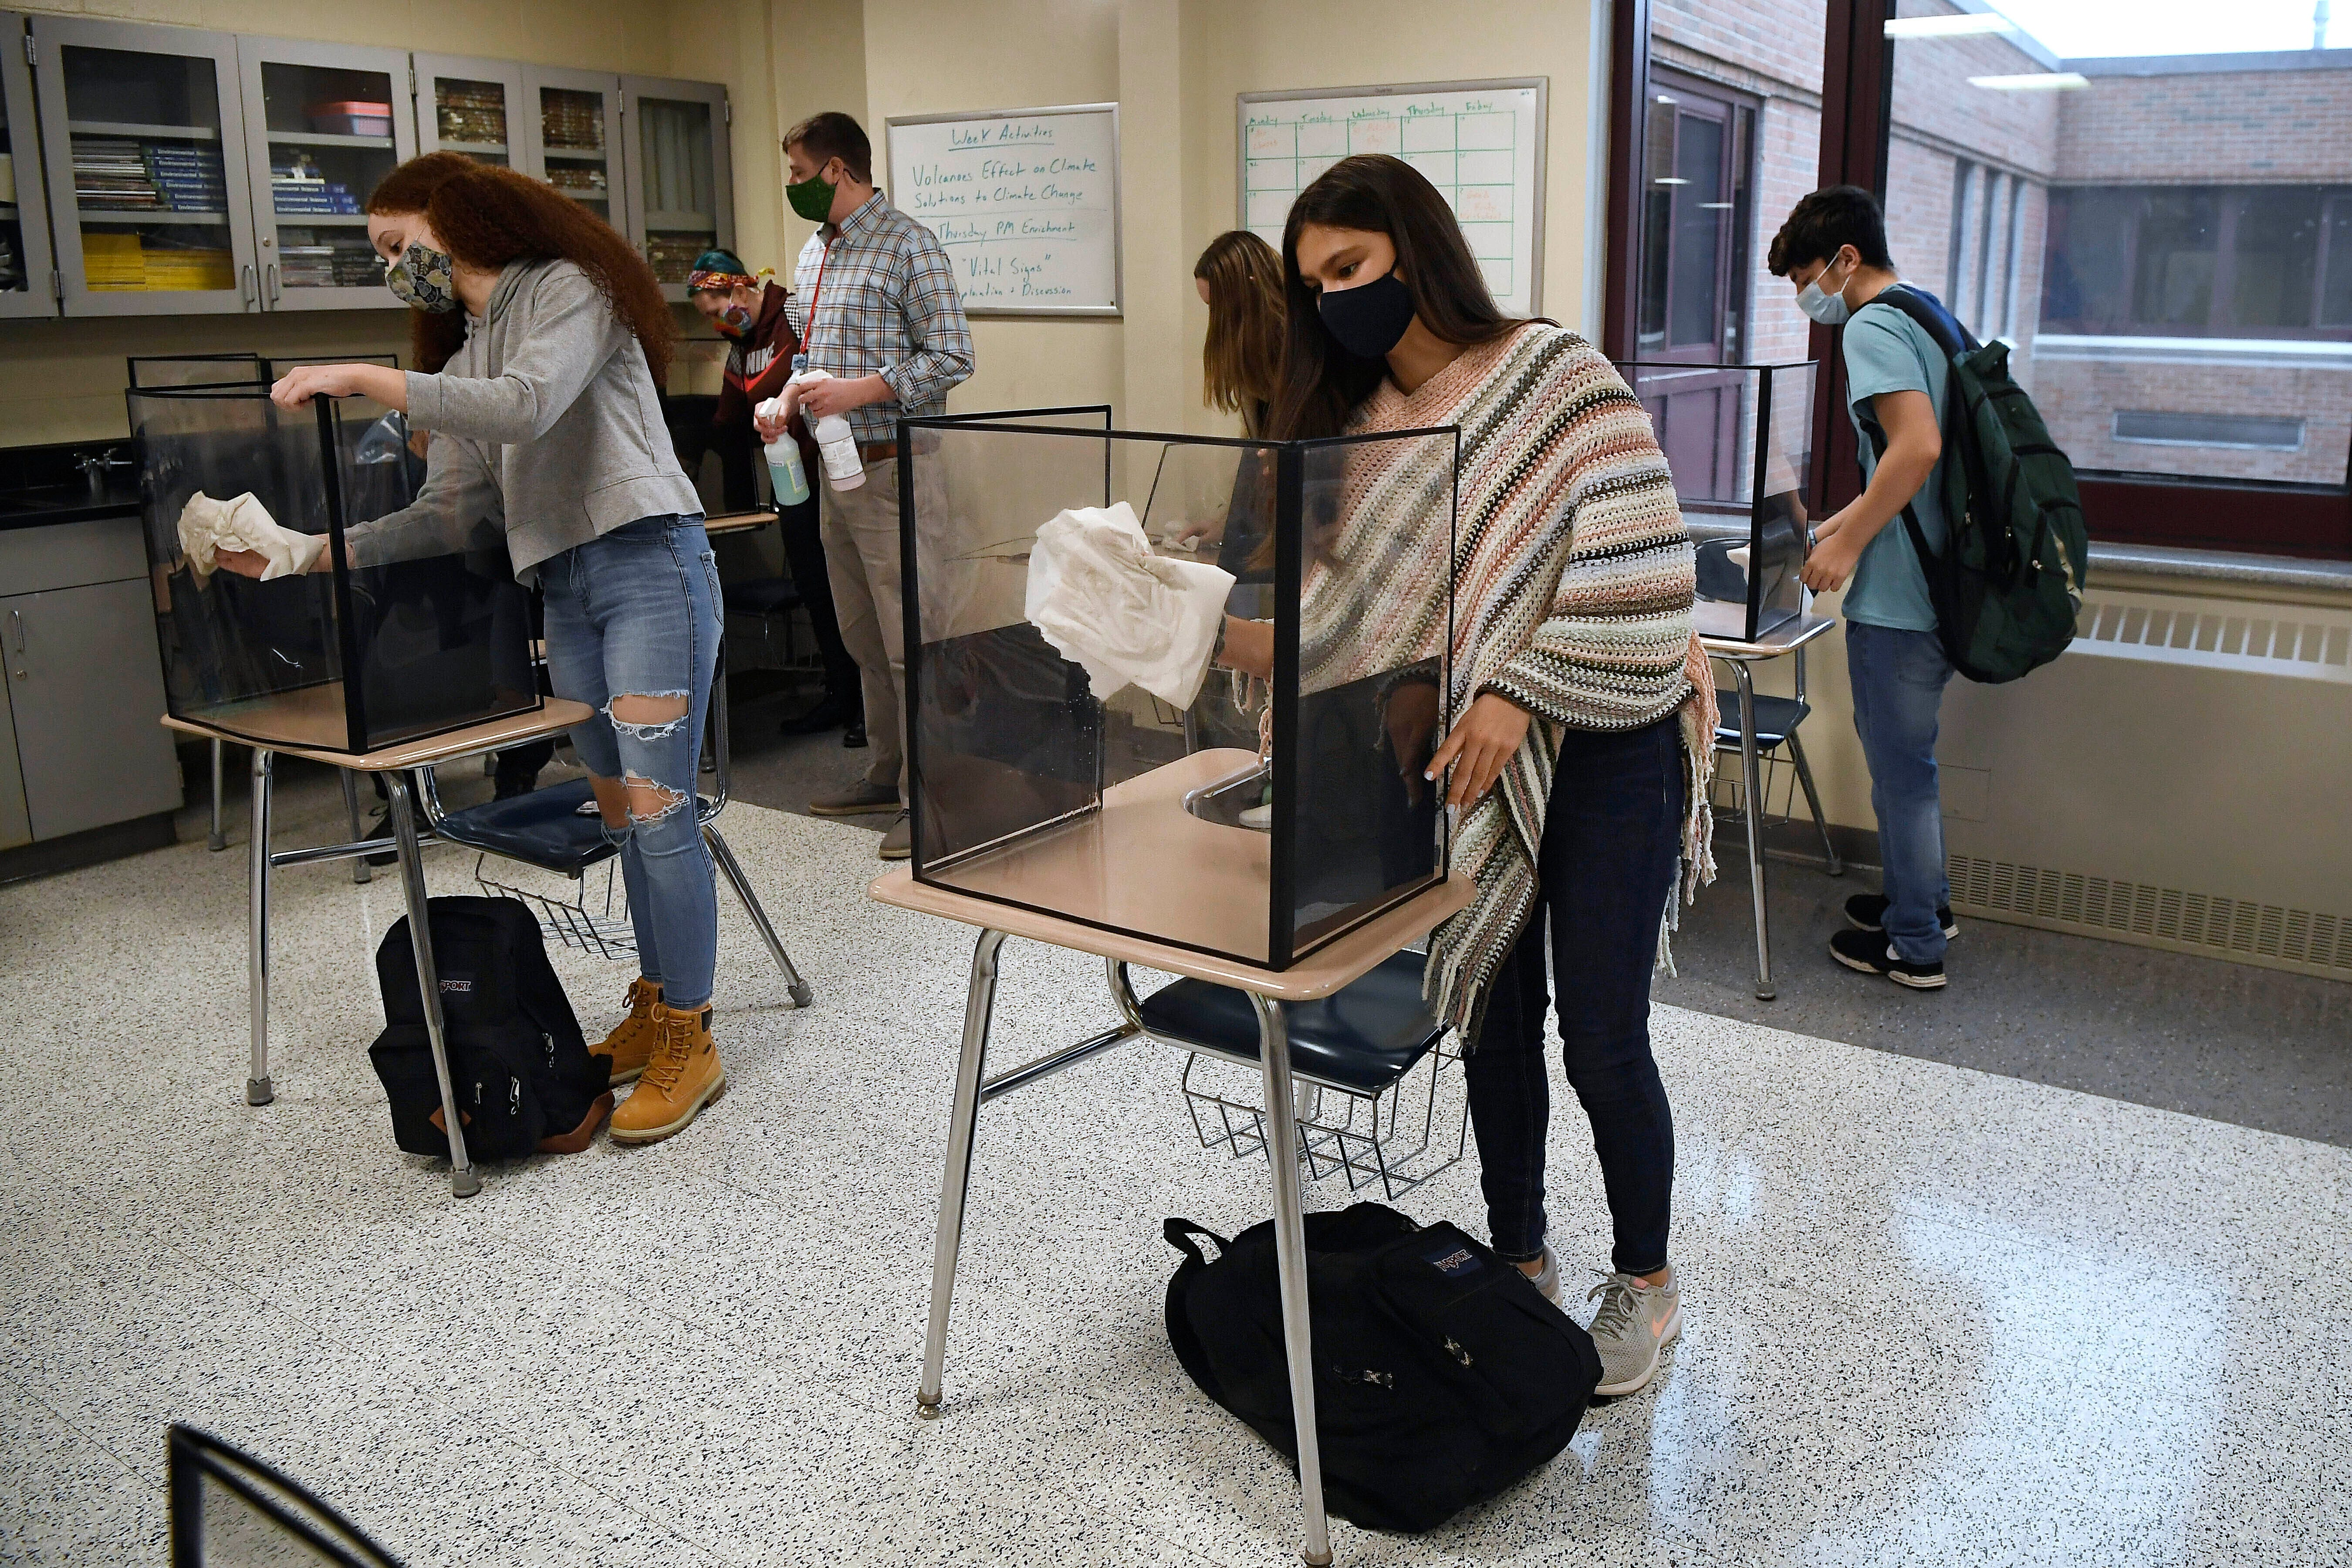 CDC changes school guidance, allowing desks to be closer 2